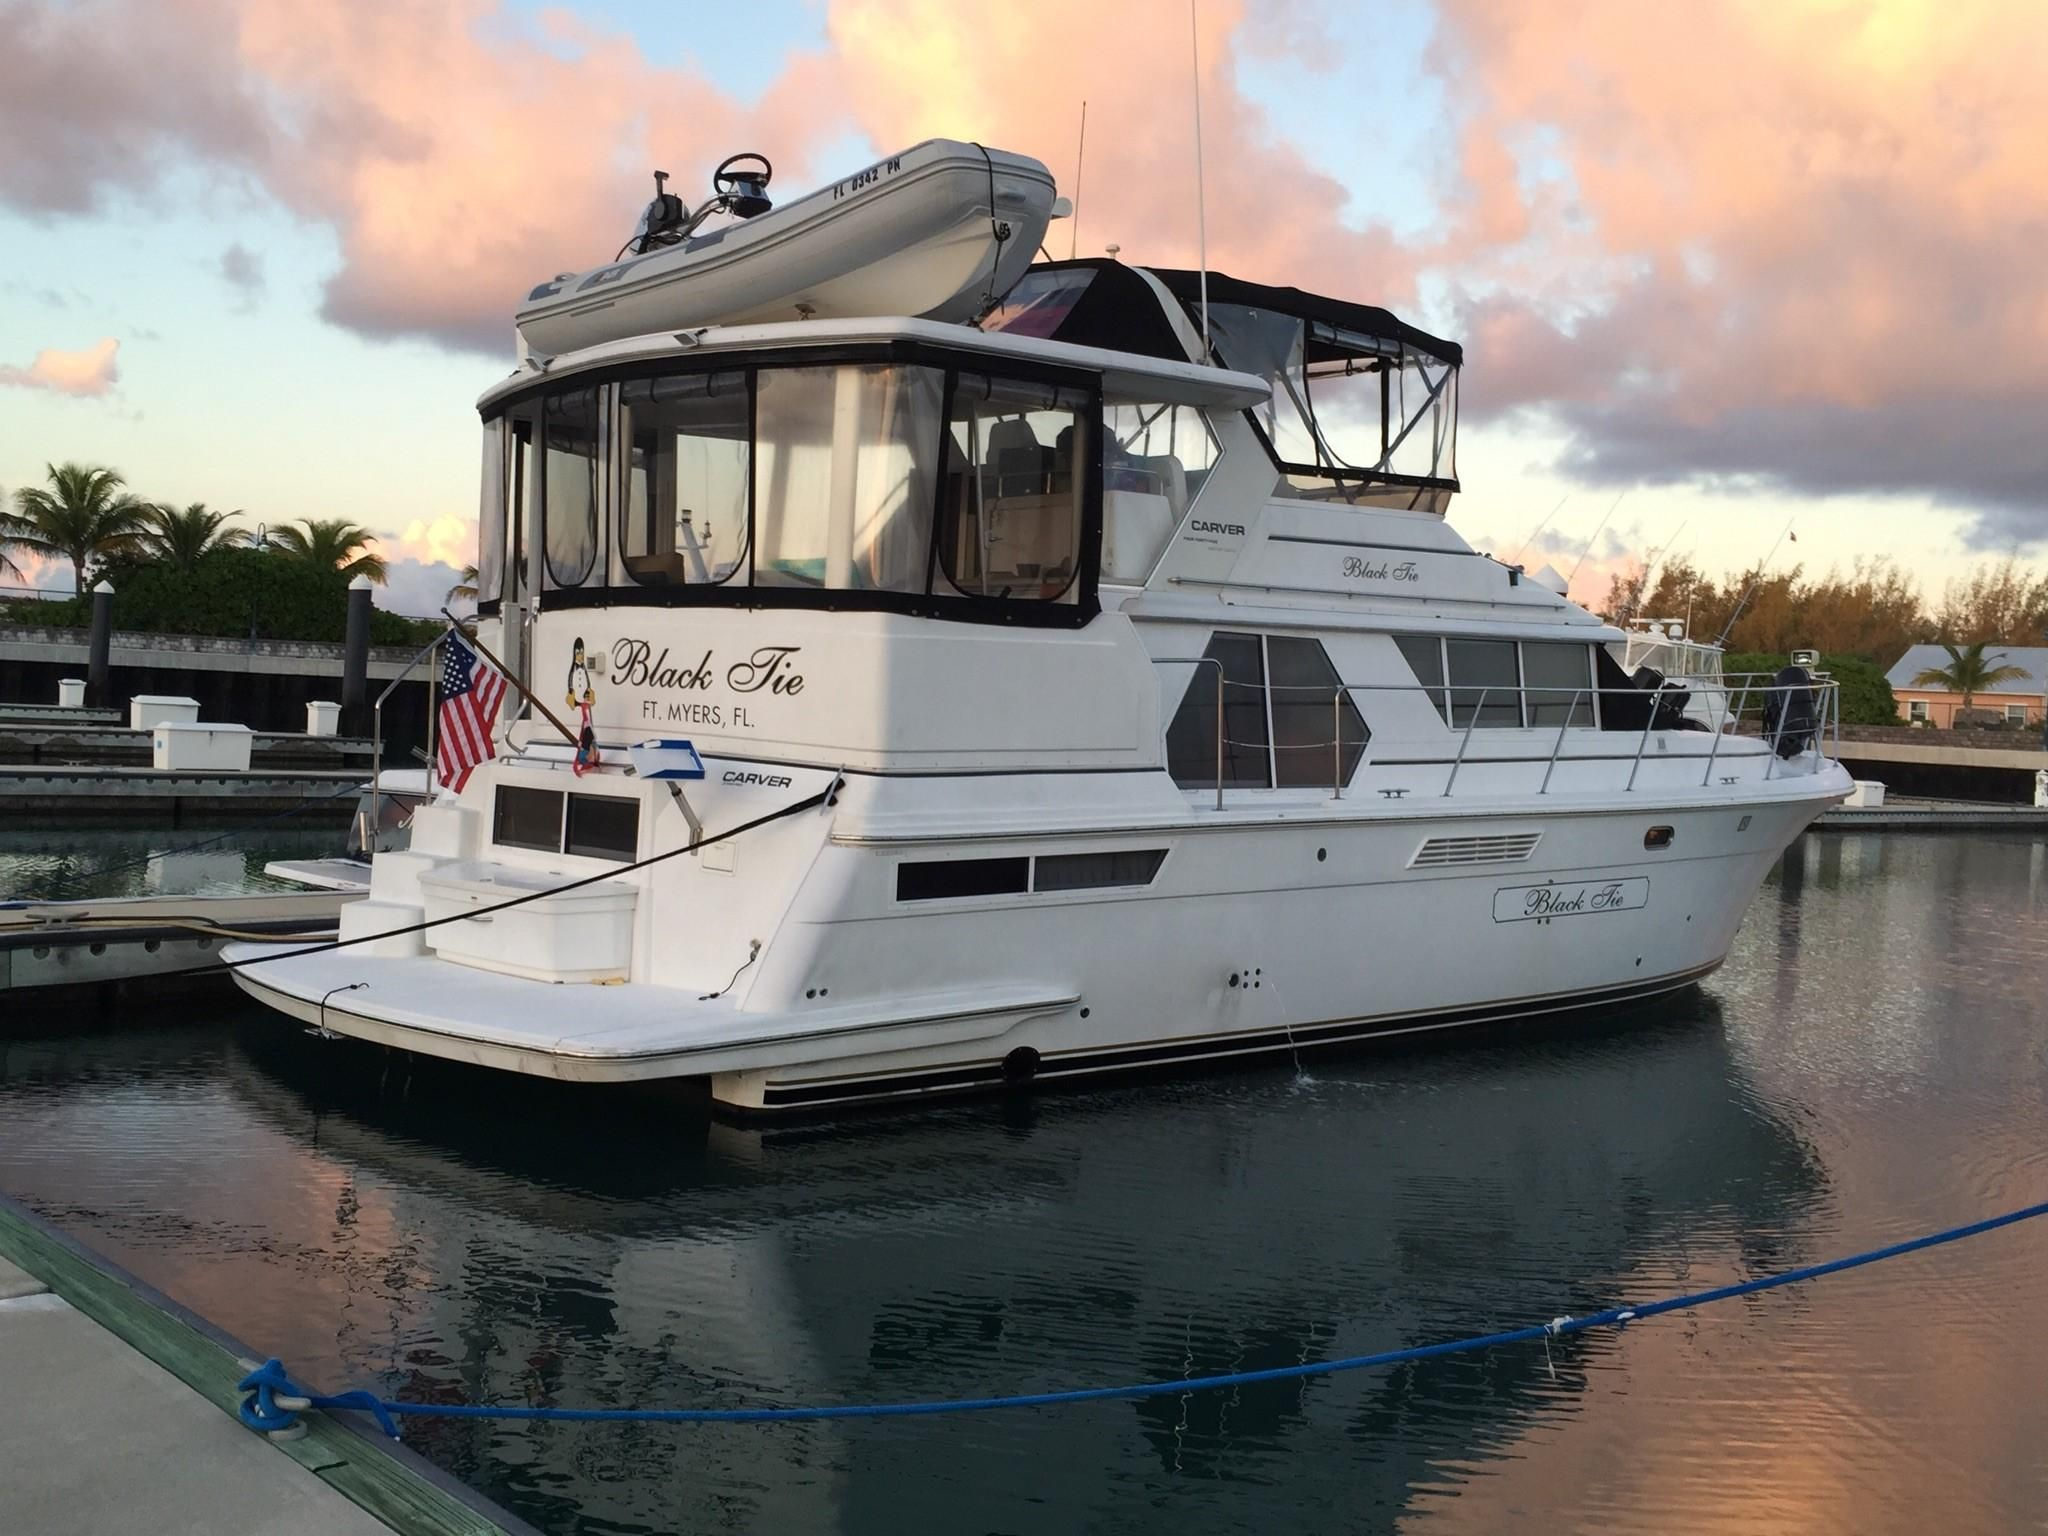 1999 carver 445 aft cabin motor yacht power boat for sale for Carver aft cabin motor yacht